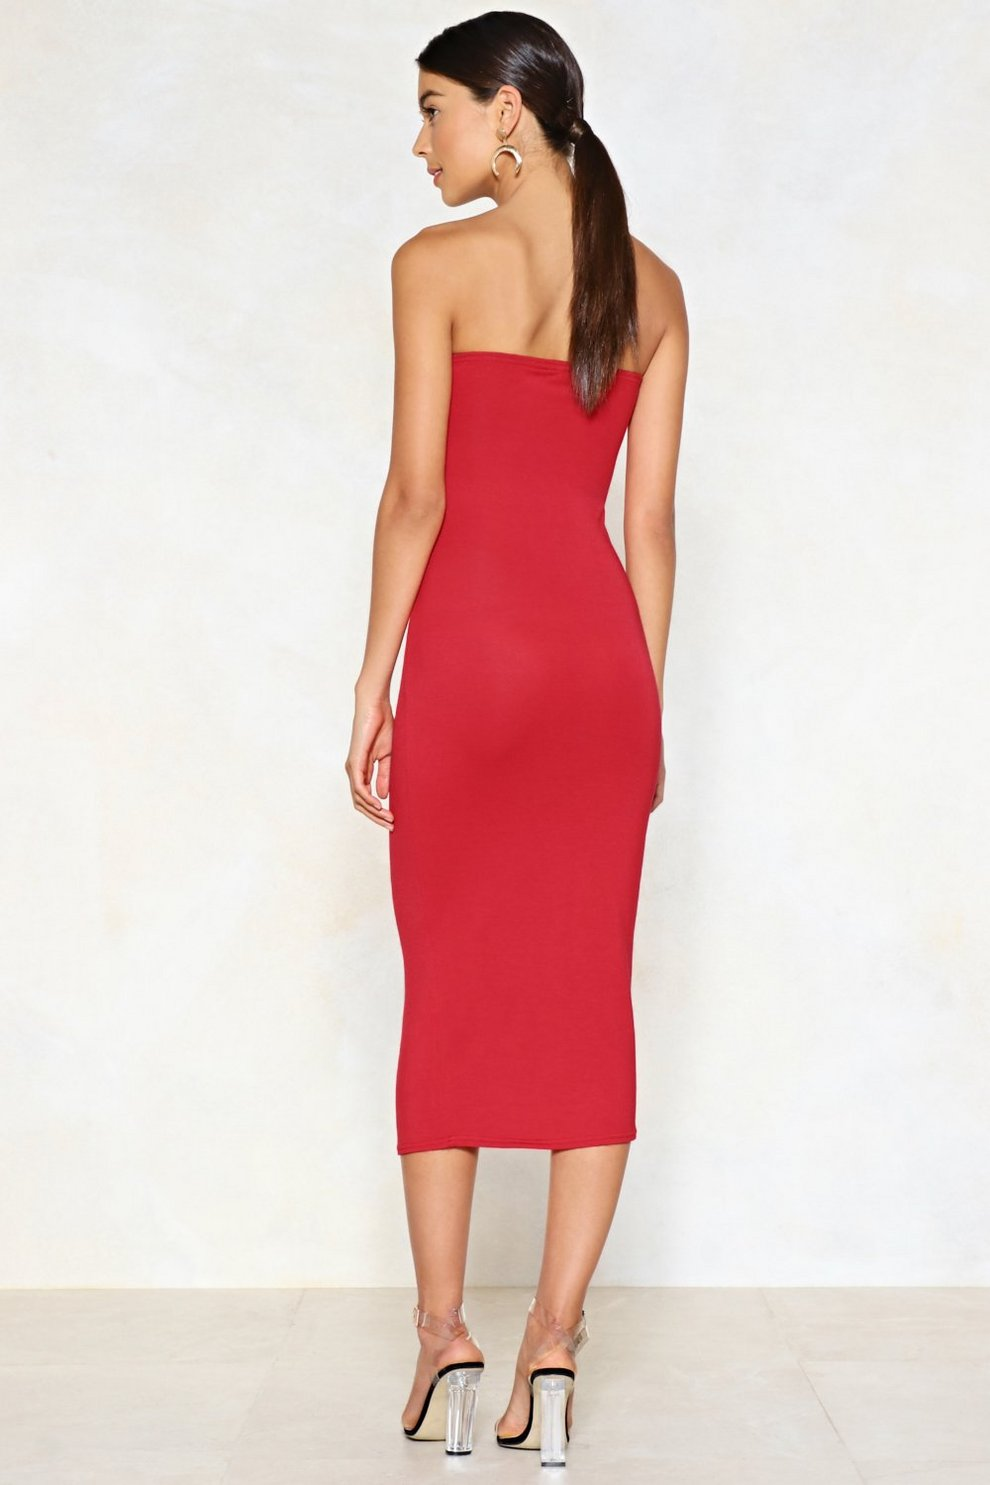 07f91eed33b66 Simple as That Strapless Dress | Shop Clothes at Nasty Gal!